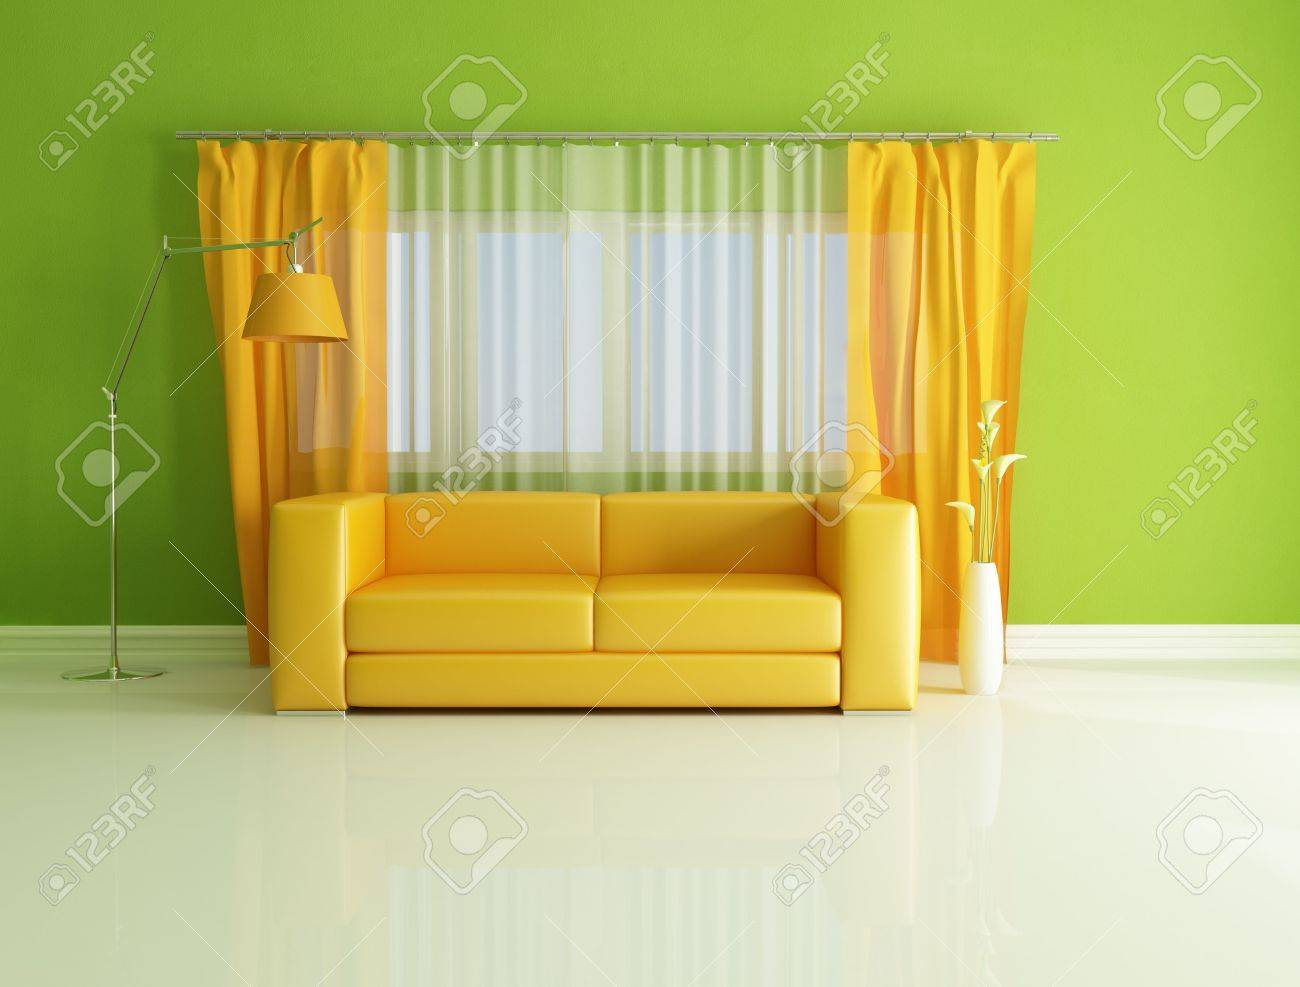 Minimalist Green And Orange Living Room   Rendering Stock Photo   7209636 Part 47